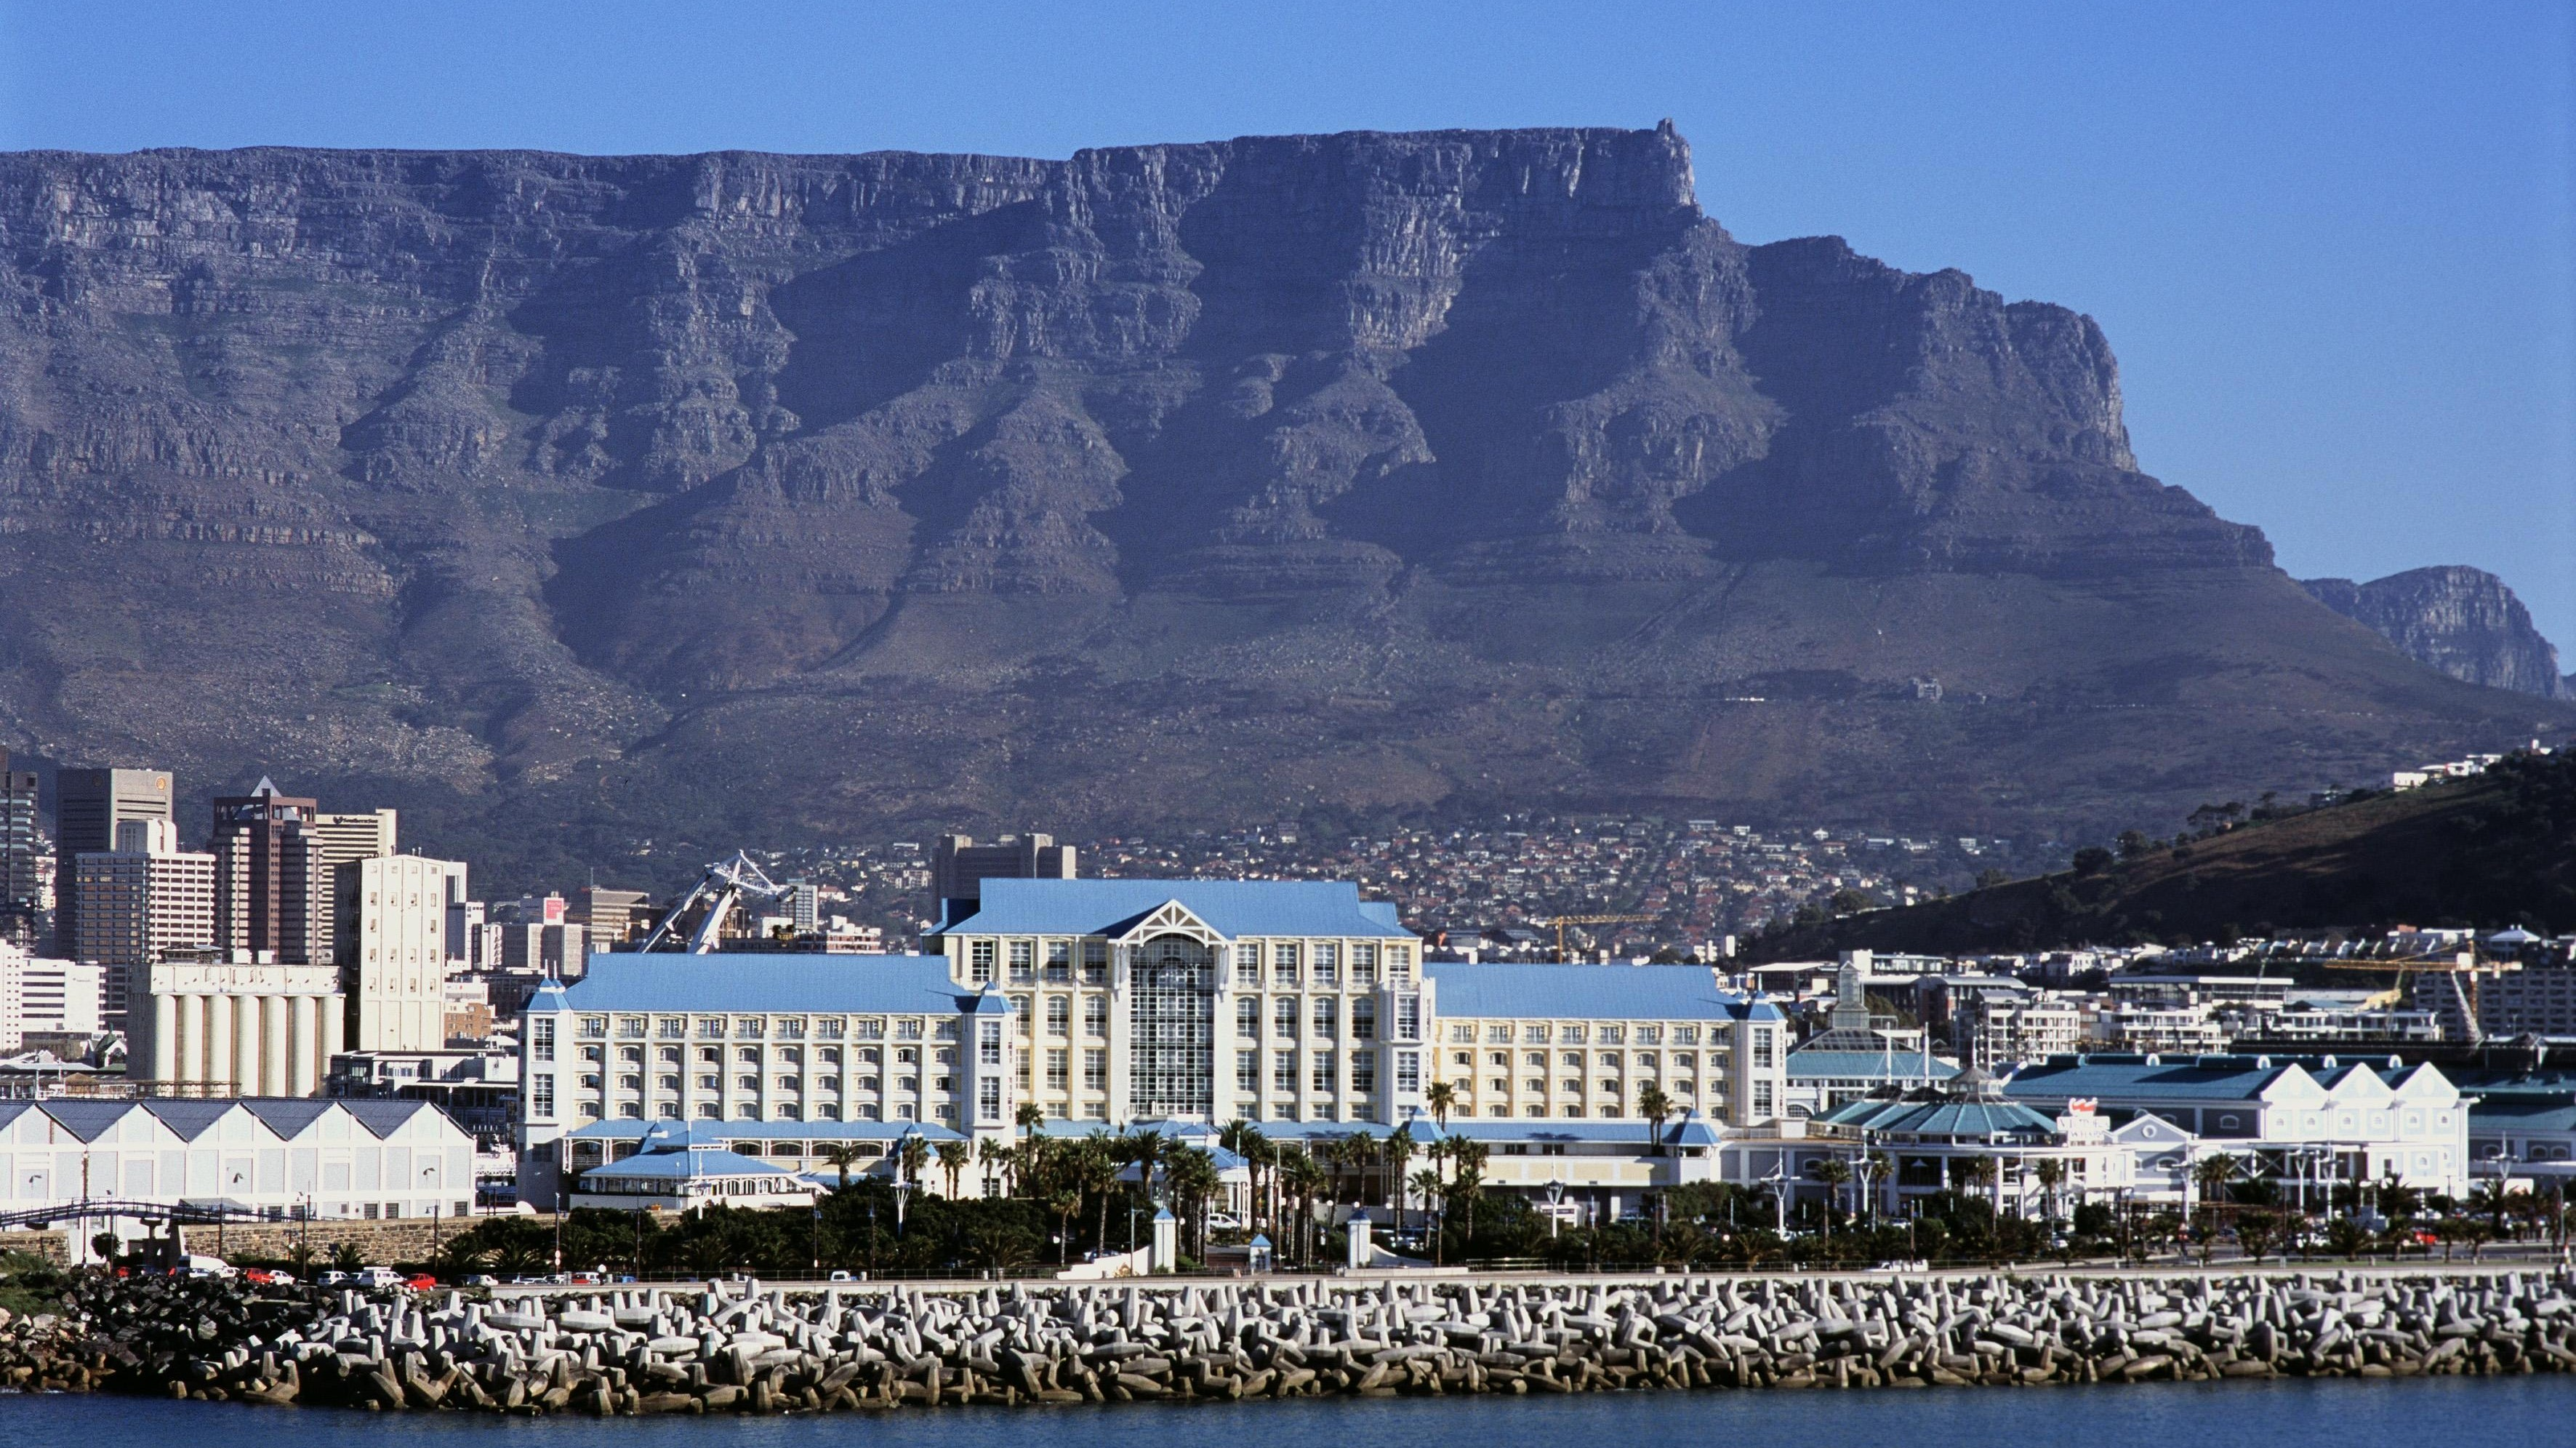 Table bay hotel contact details for Table bay hotel quay 6